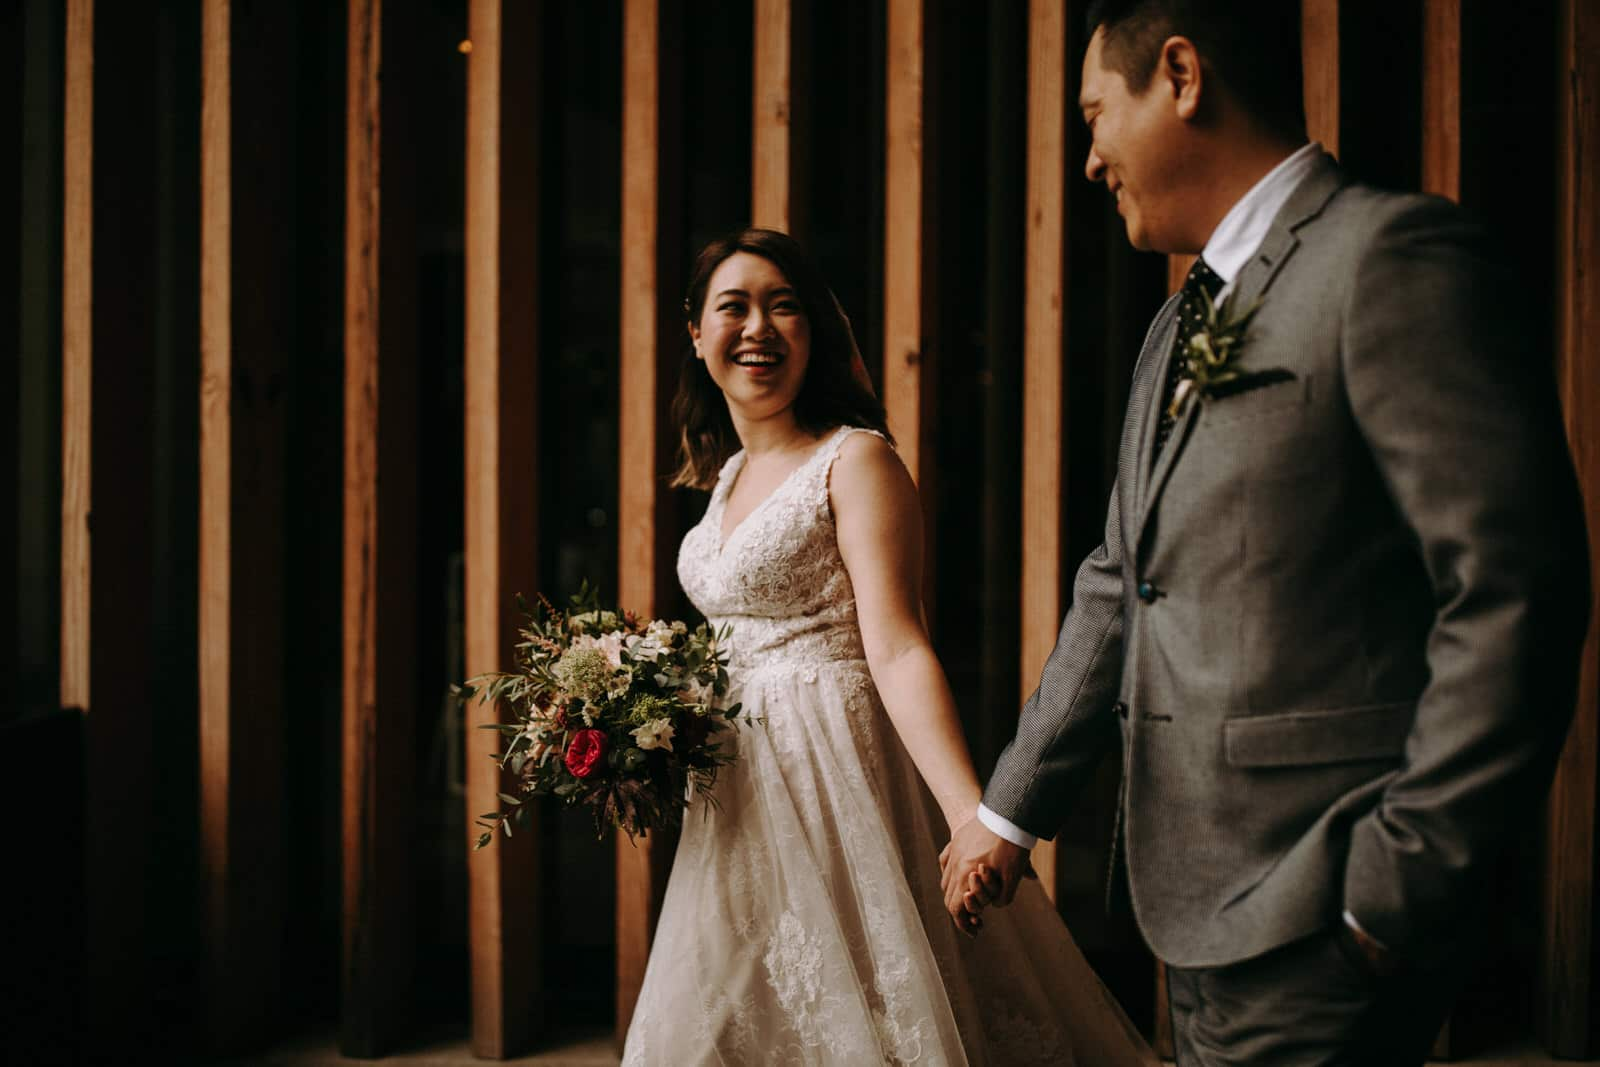 A wedding couple is holding hands.